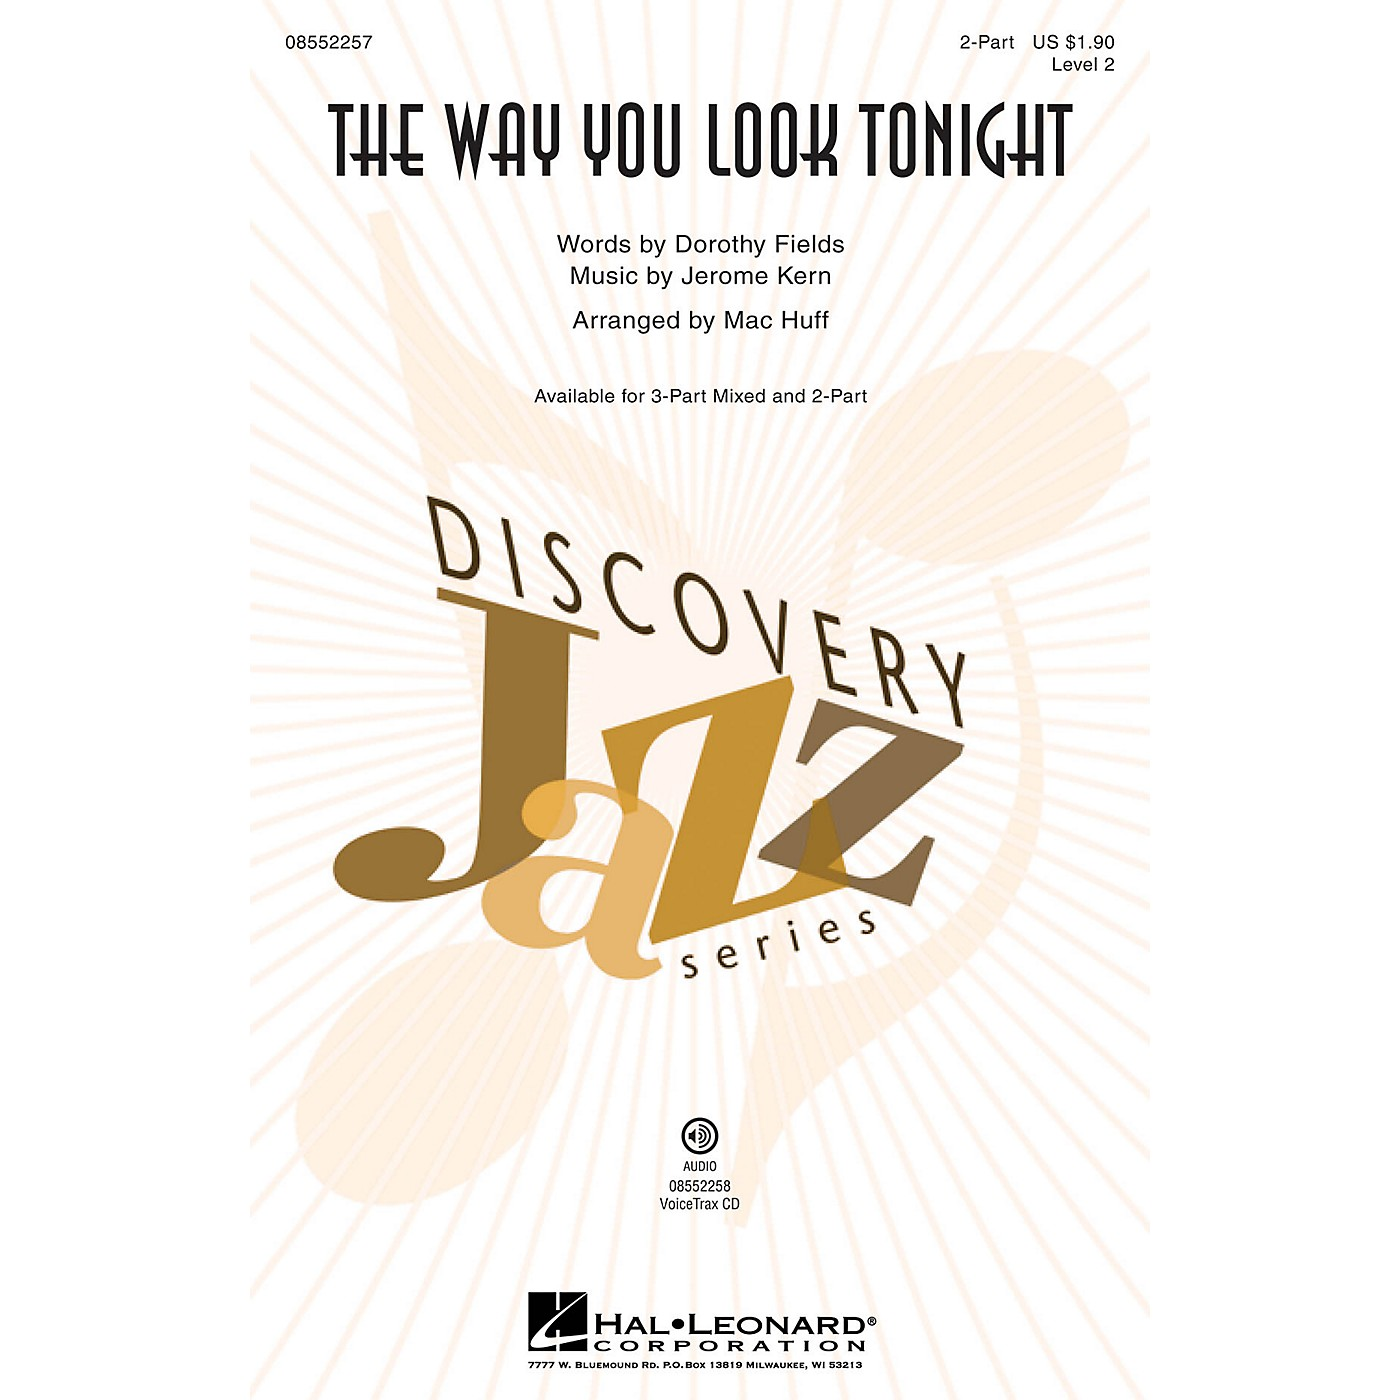 Hal Leonard The Way You Look Tonight (Discovery Level 2) 2-Part arranged by Mac Huff thumbnail